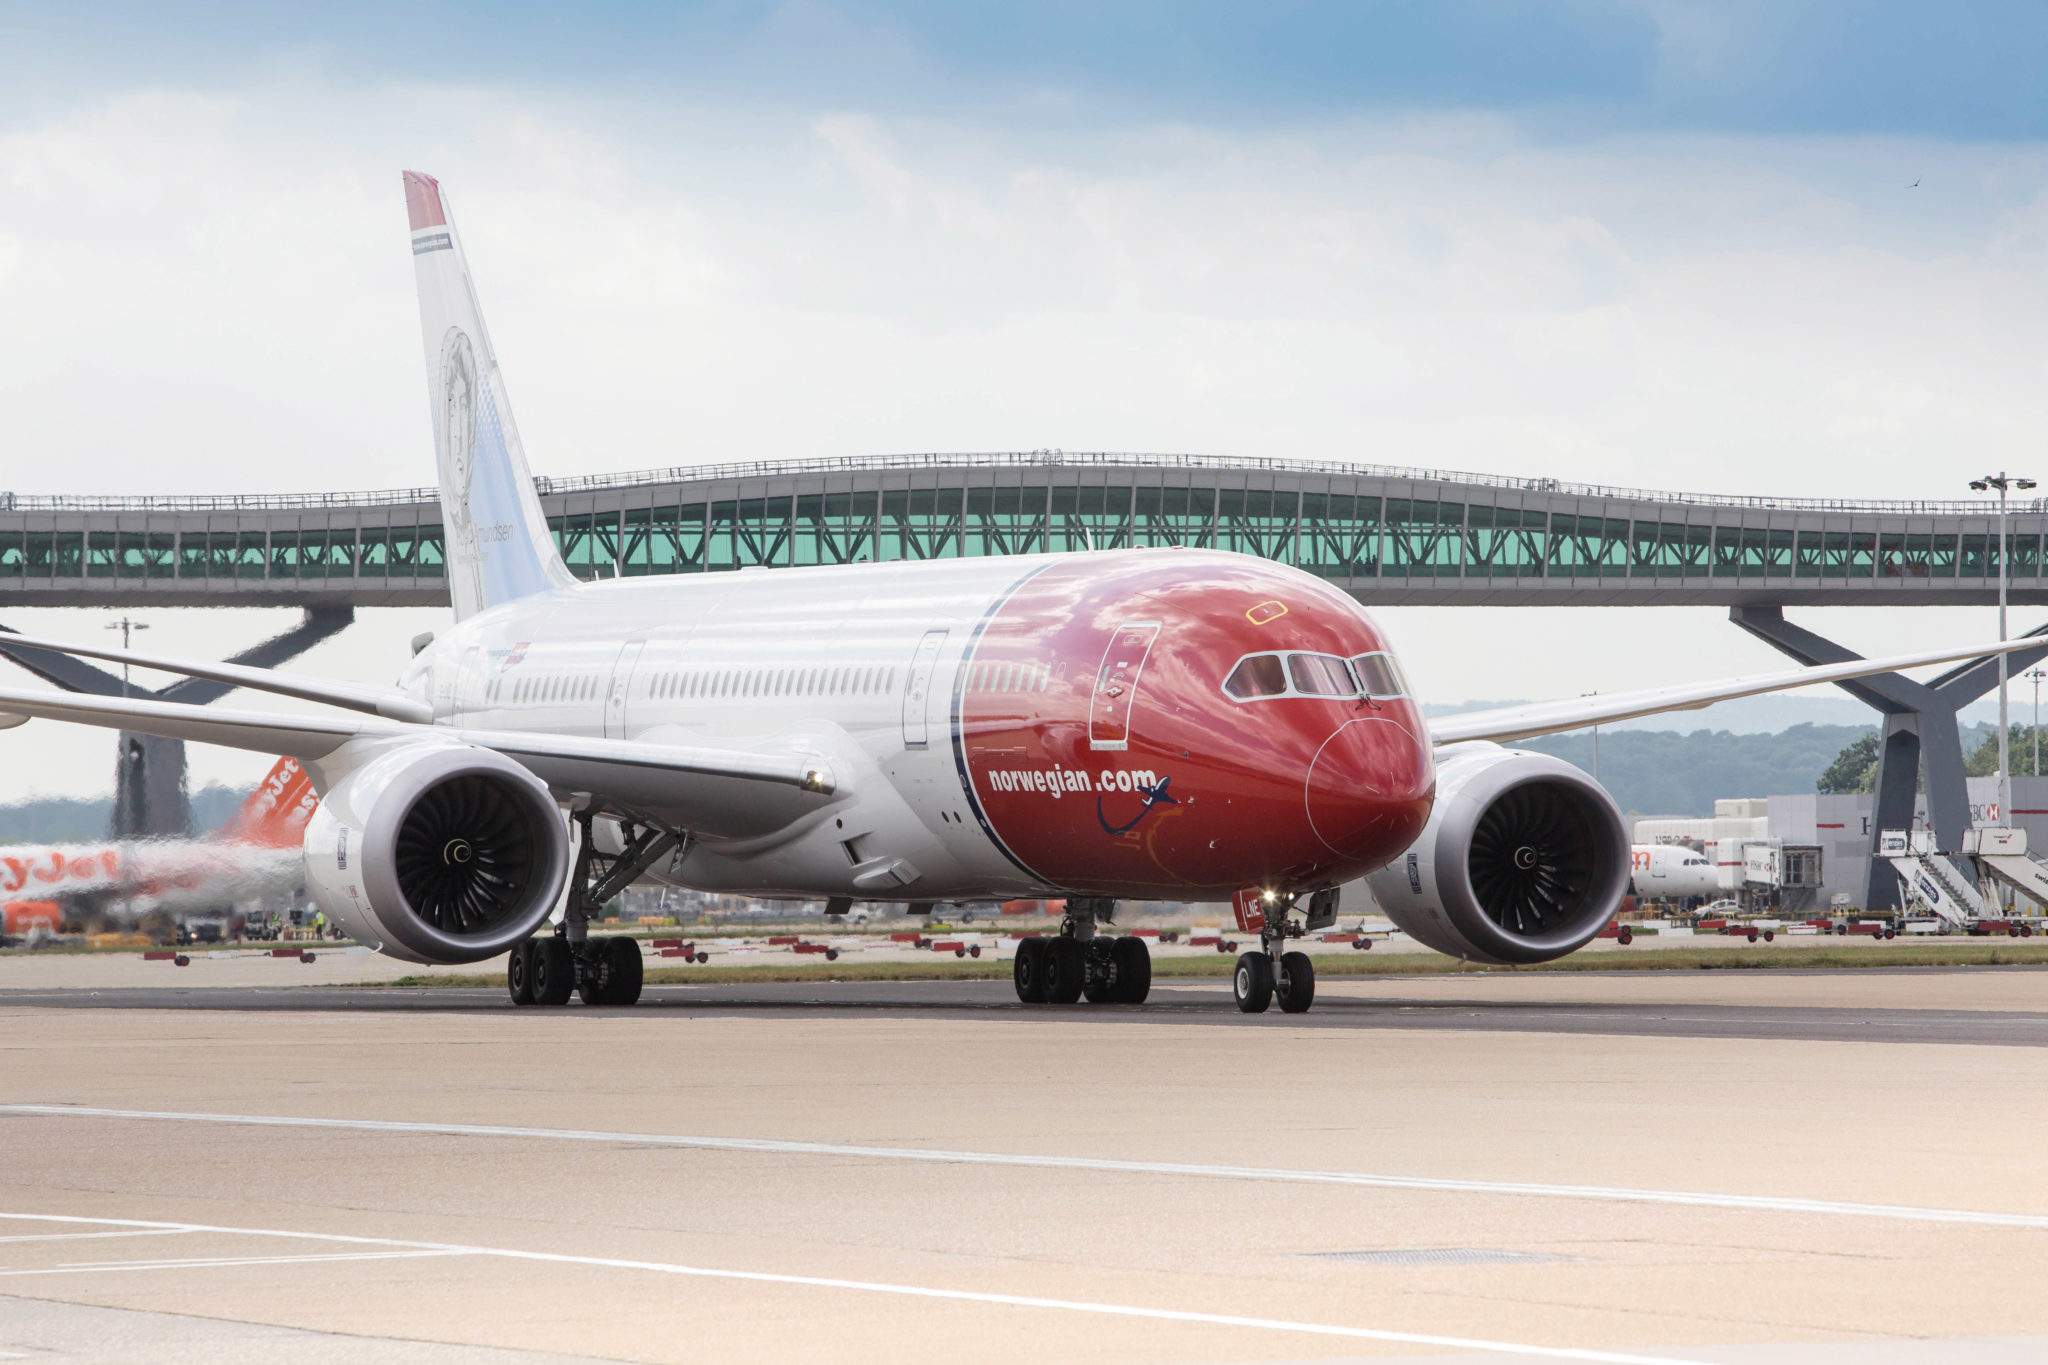 Norwegian 787-9 Dreamliner at Gatwick; image courtesy of media.norwegian.com